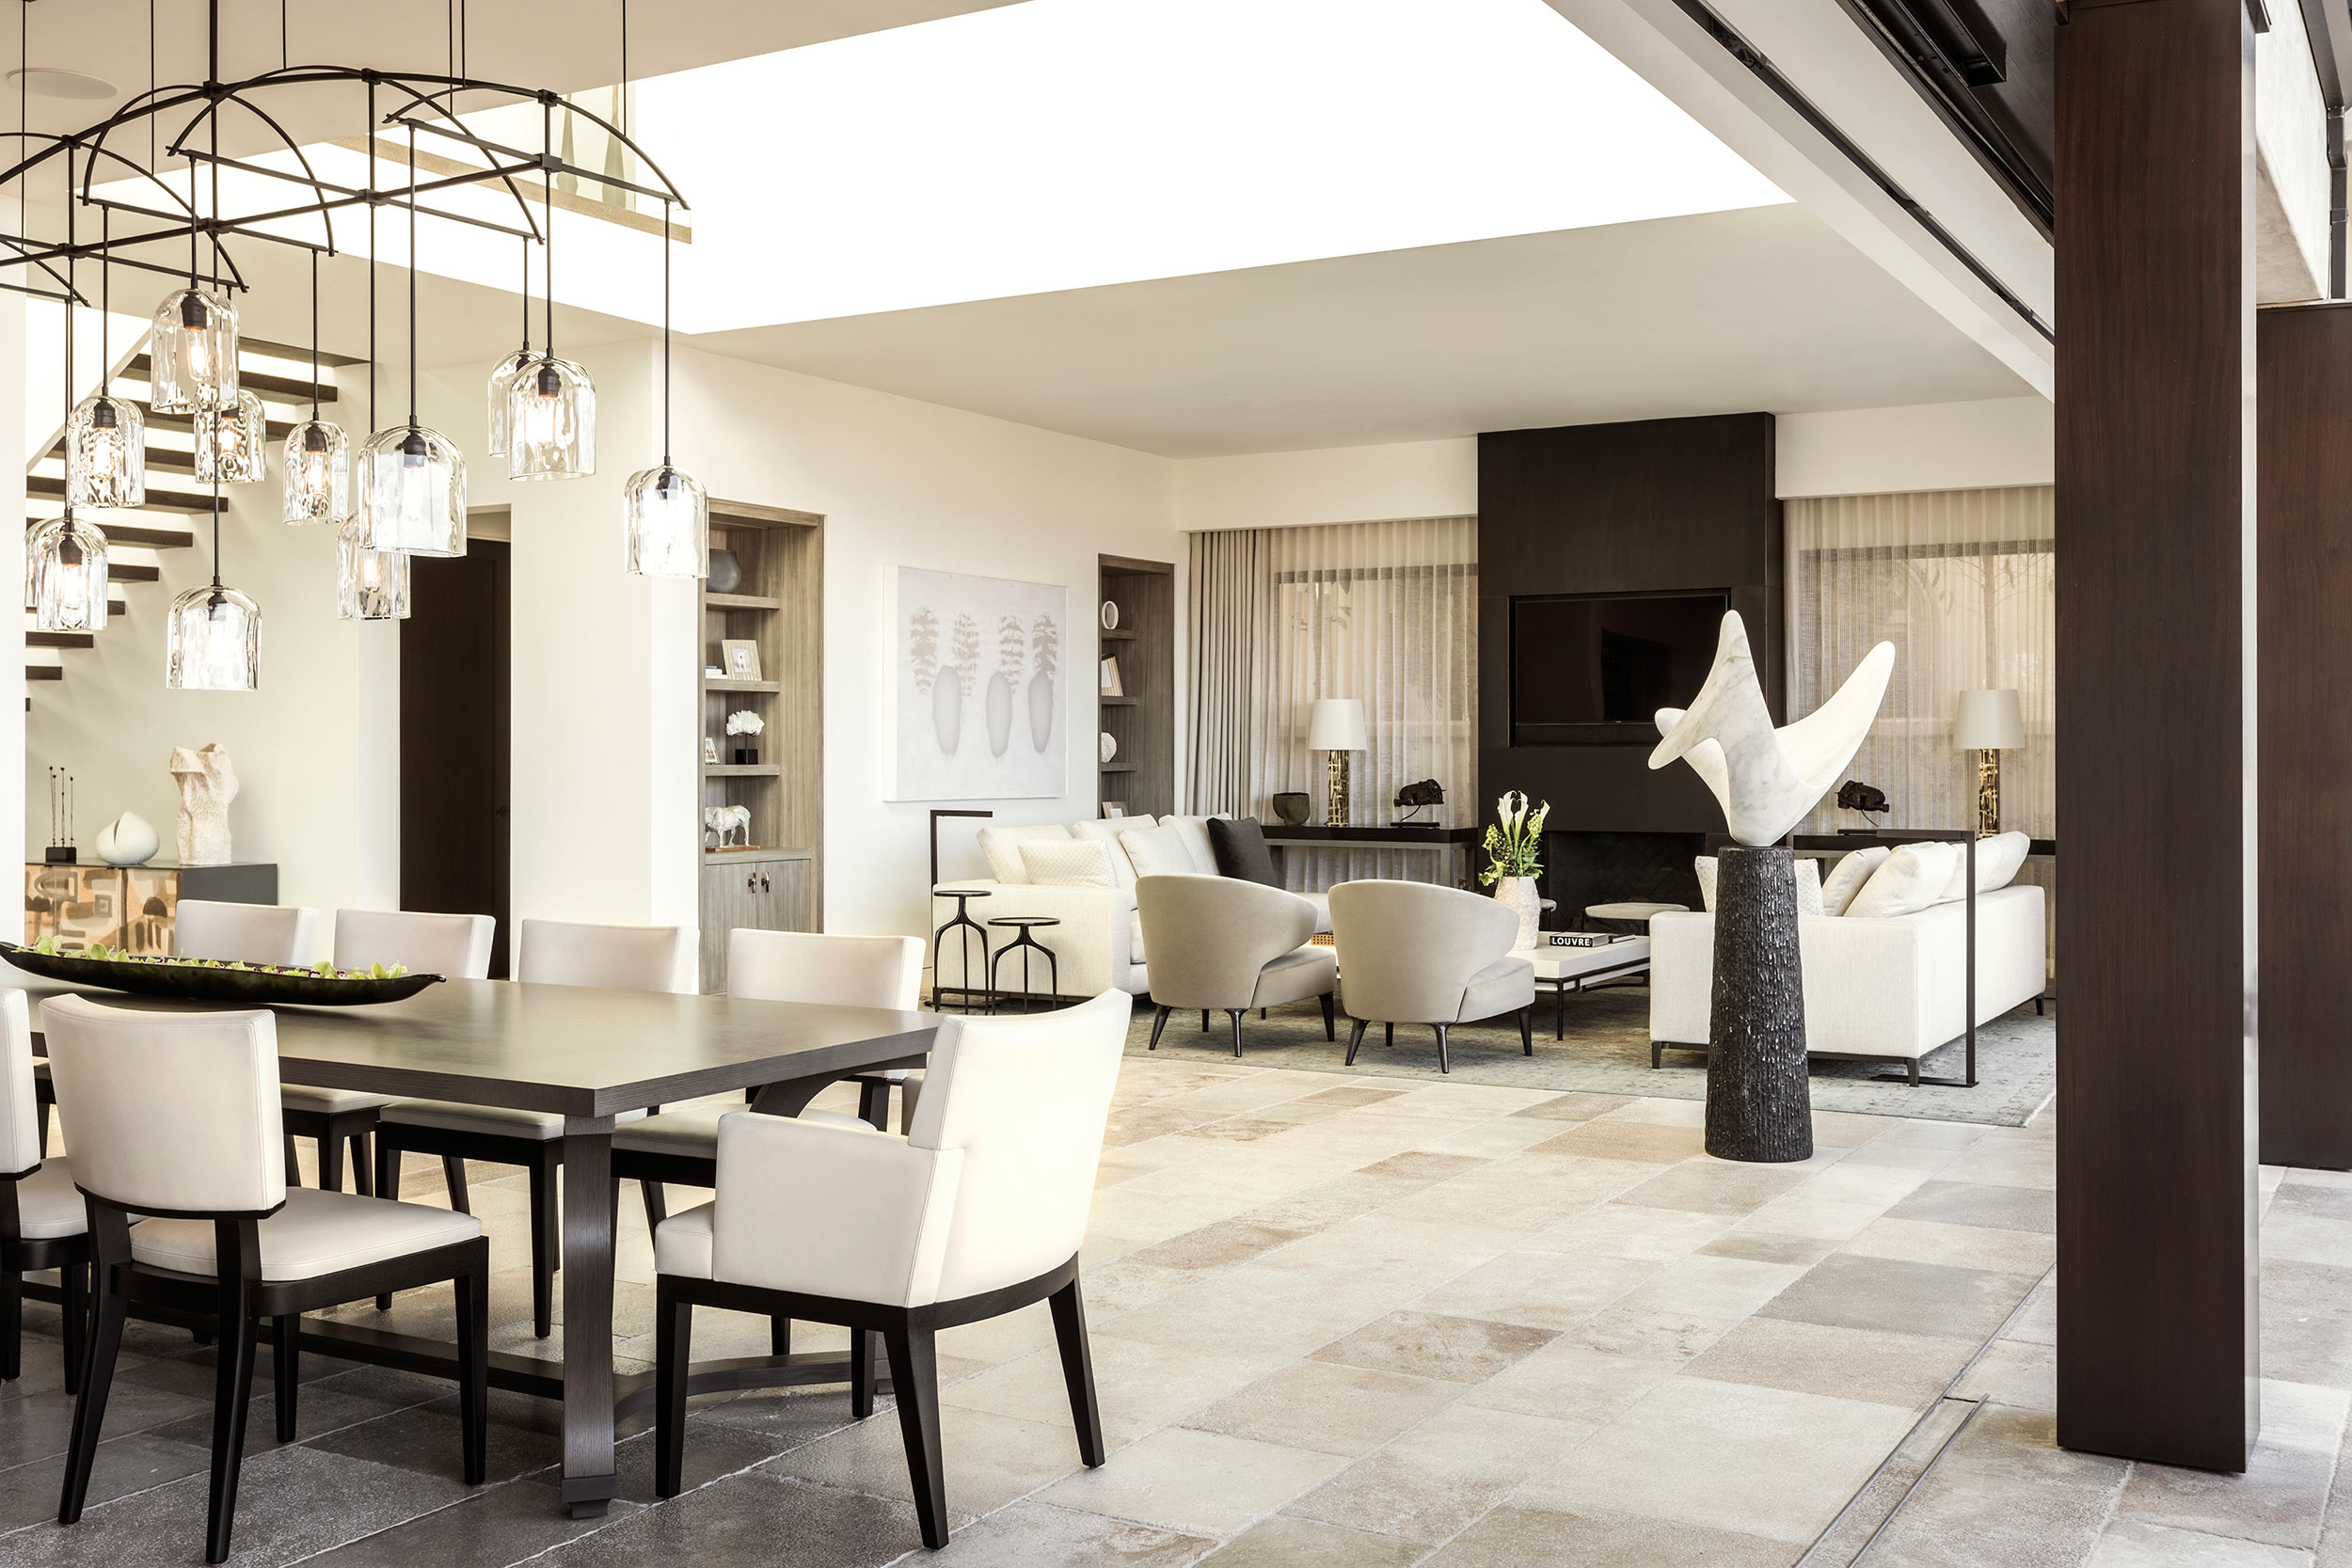 Muted neutral colors in the interior blend the rooms into a cohesive experience